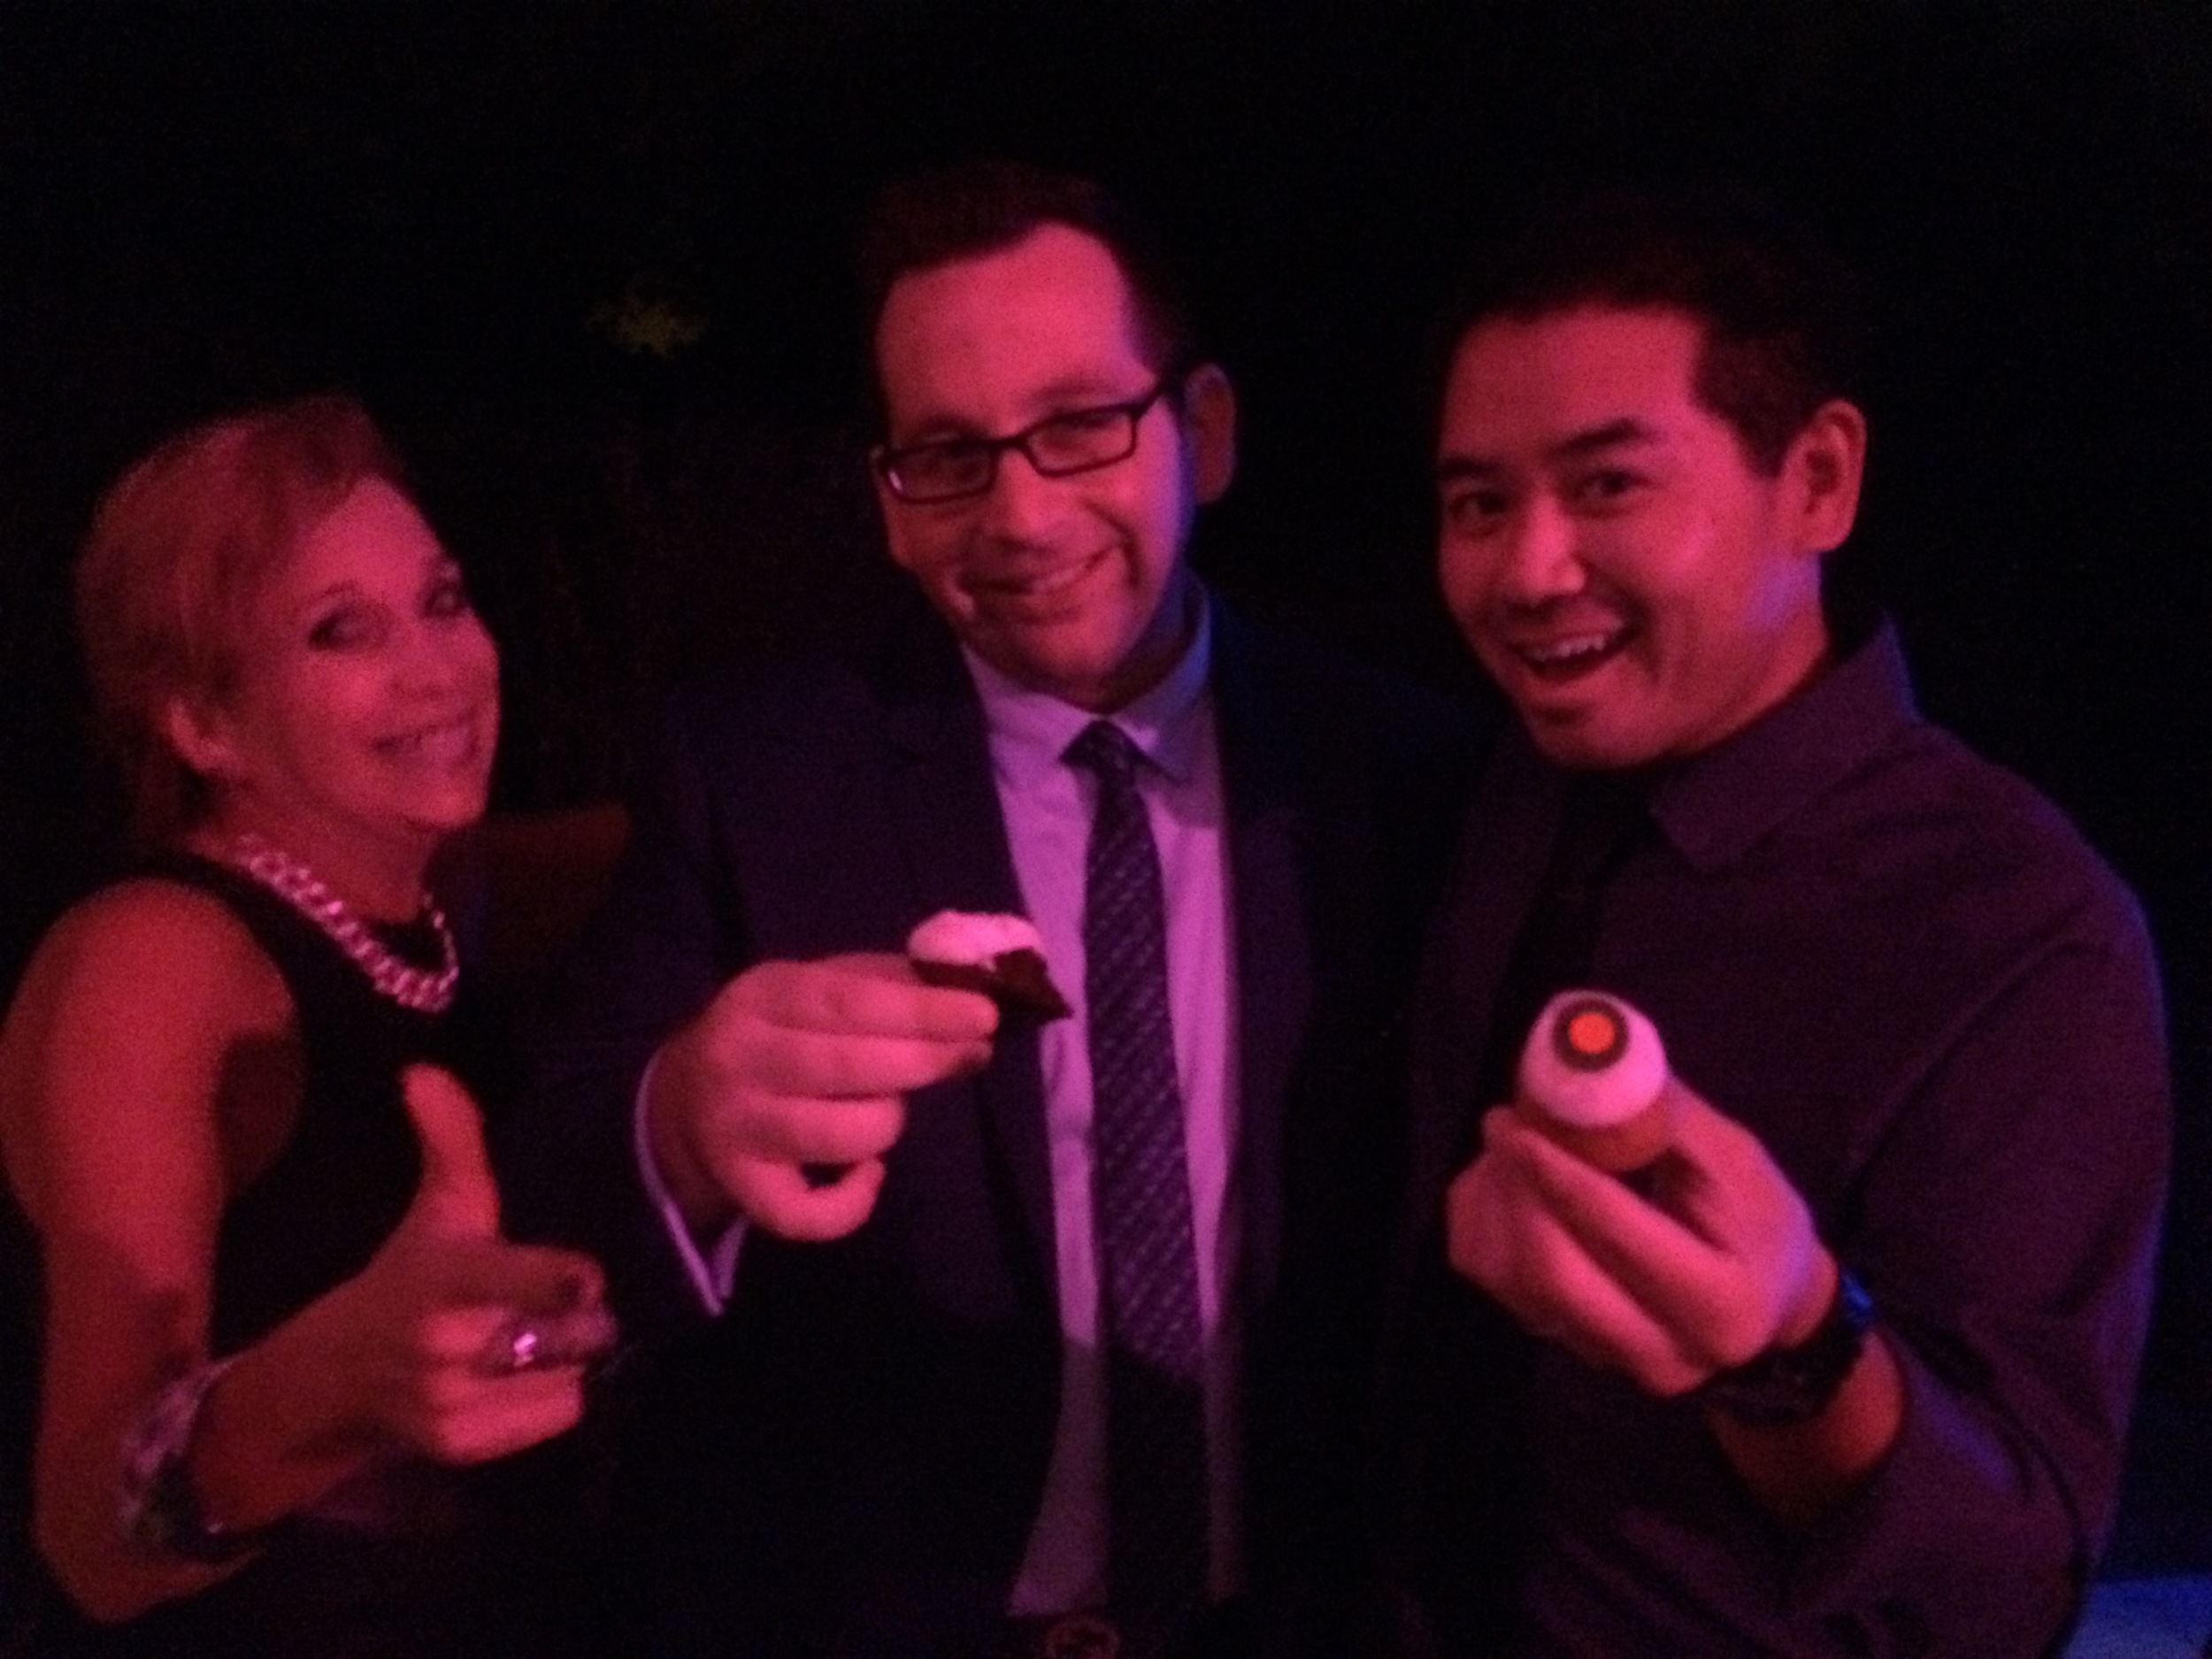 Sprinkles cupcakes were the perfect way to celebrate 30 years for Matthew.